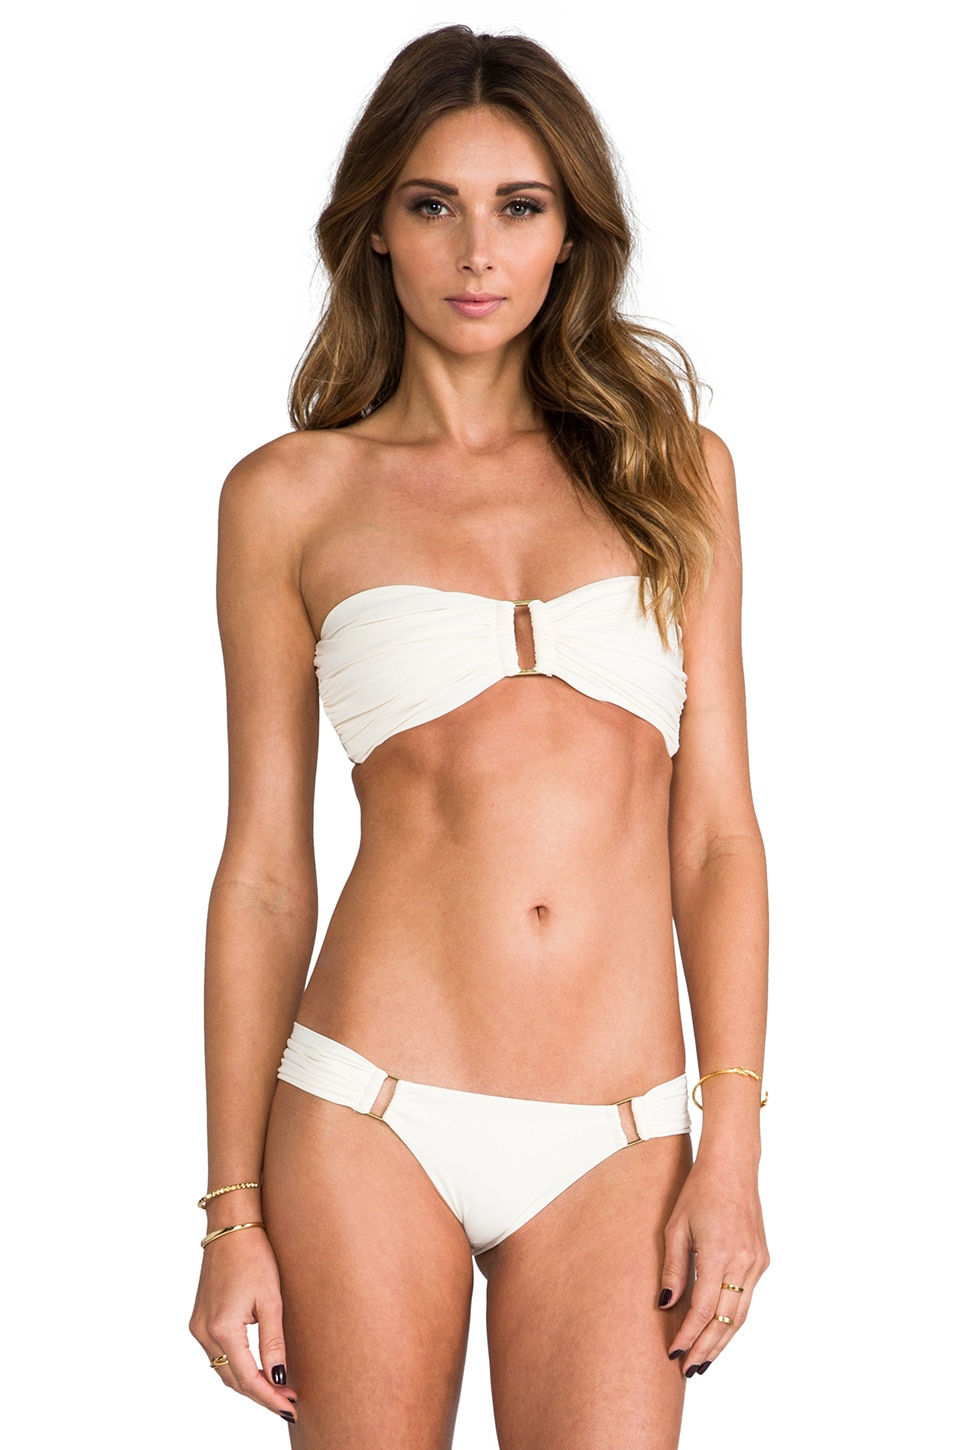 BOYS + ARROWS Olivia the Outlaw Bandeau Top in Coconut